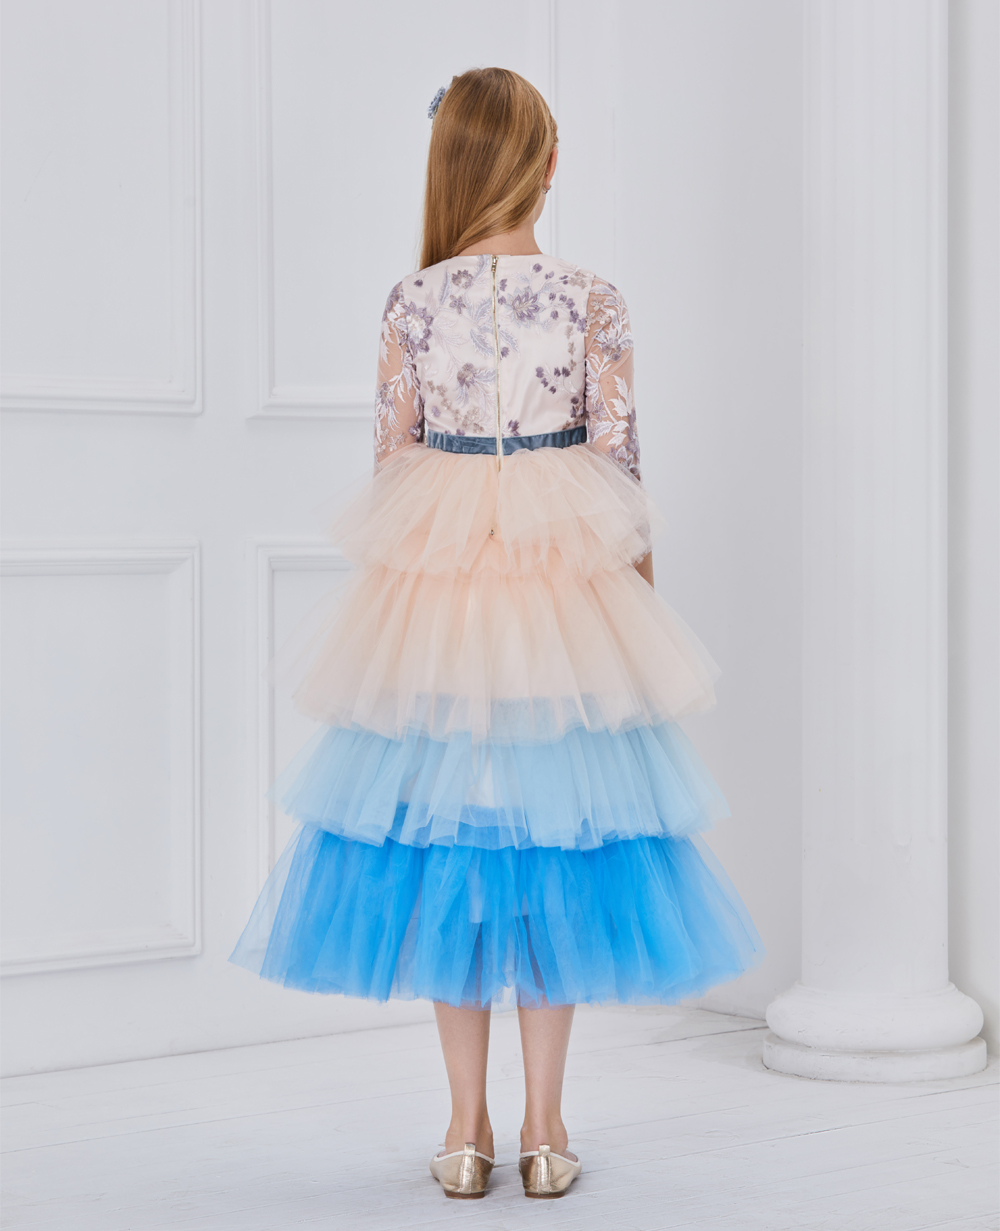 Pink and blue layered embroidery dress